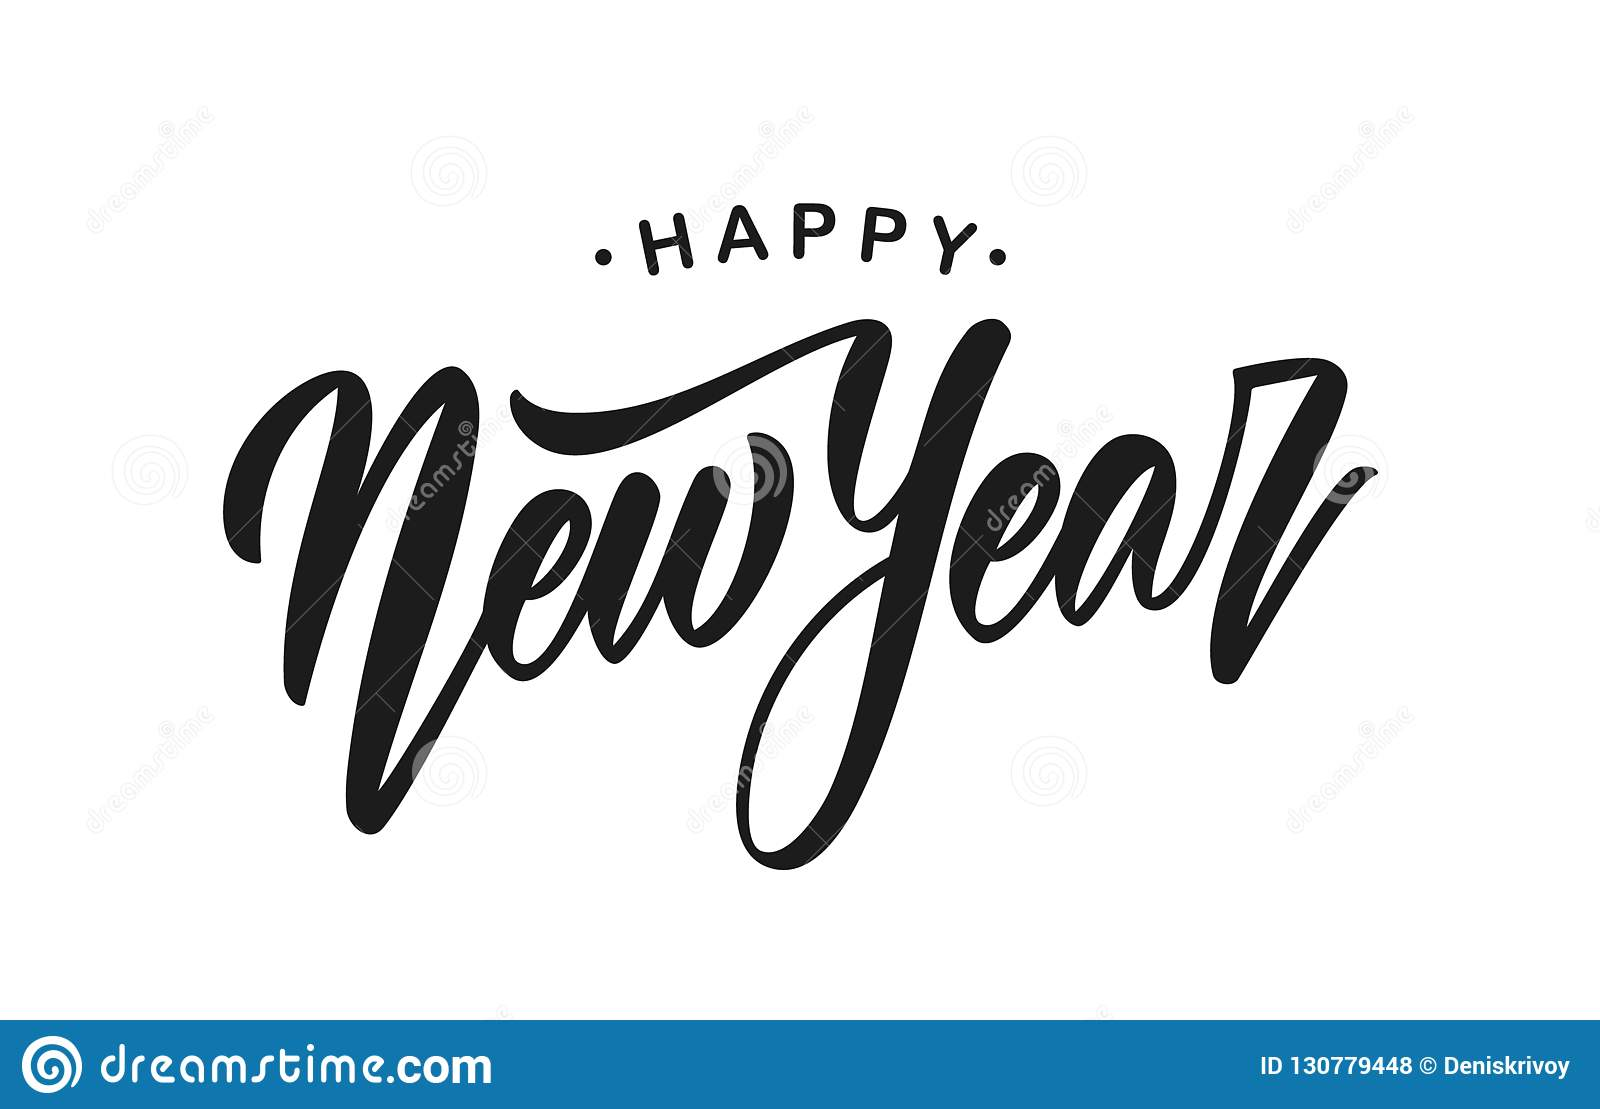 happy new year message stock illustrations 45 037 happy new year message stock illustrations vectors clipart dreamstime https www dreamstime com vector illustration handwritten modern brush lettering happy new year isolated white background vector illustration image130779448